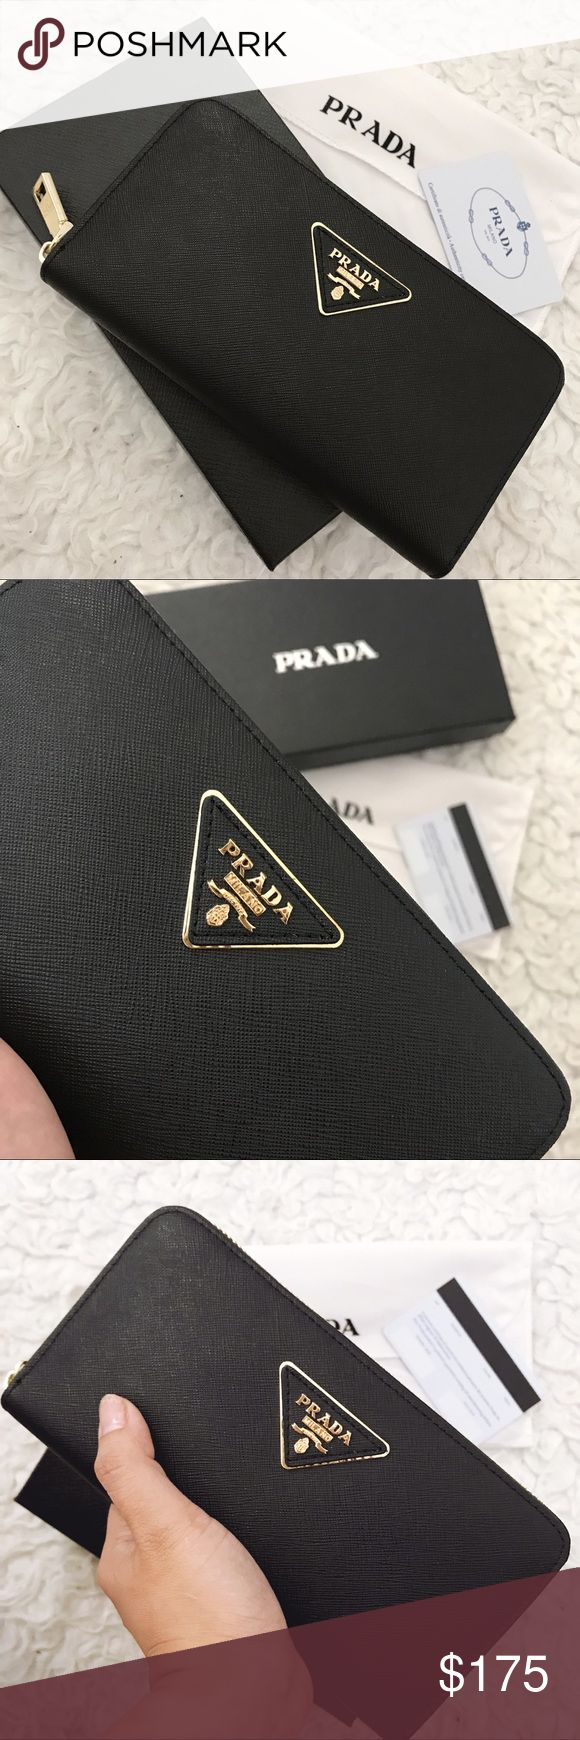 Prada Wallet Saffiano Price reflects A u t h en ti ci t y.  Bought this at HK. Brand new comes with Everything in the picture I will ship it together with Receipt, card, dust bag, box, paper bag.  If making an offer pls use the offer button only. Thank you. Prada Bags Wallets